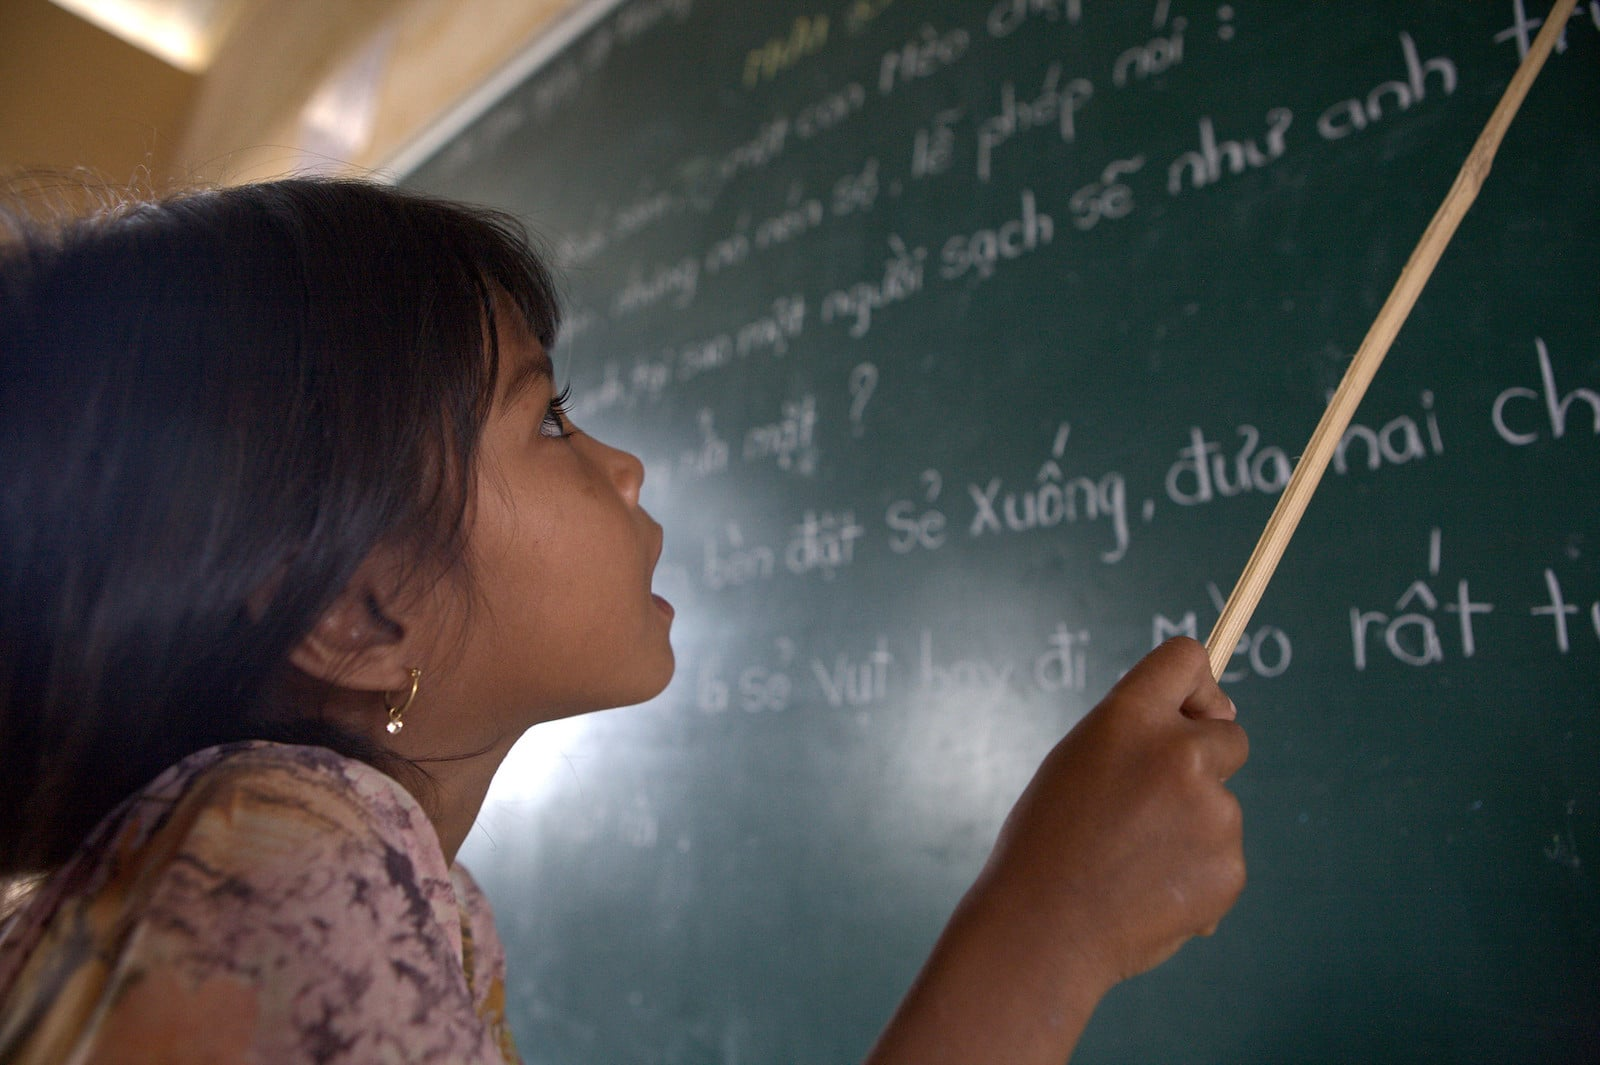 Image of a student learning Kinh, Vietnam's official language